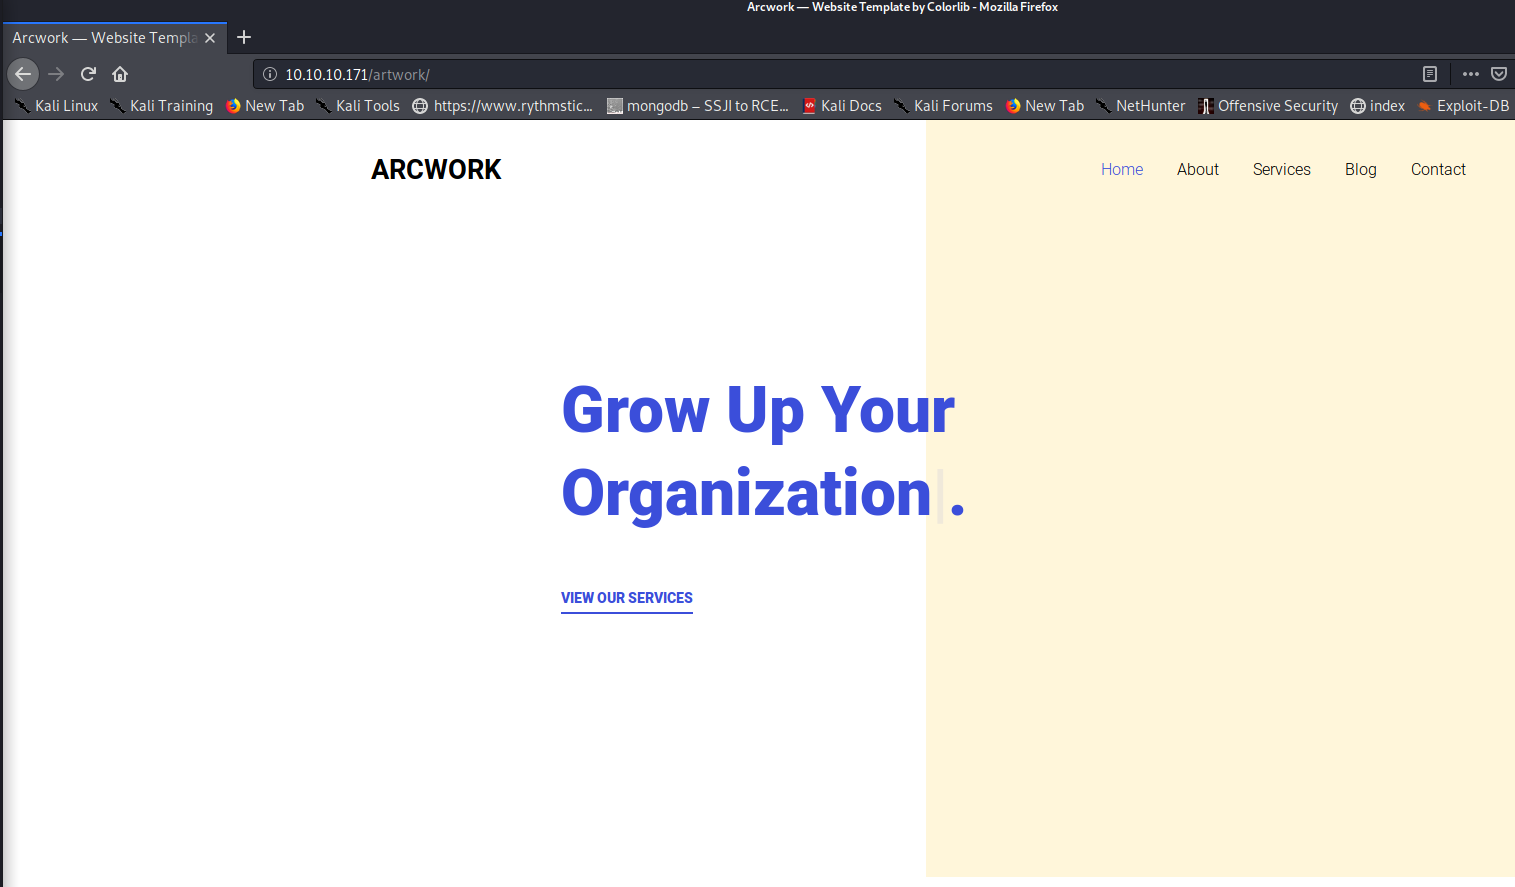 Artwork page on 'OpenAdmin'